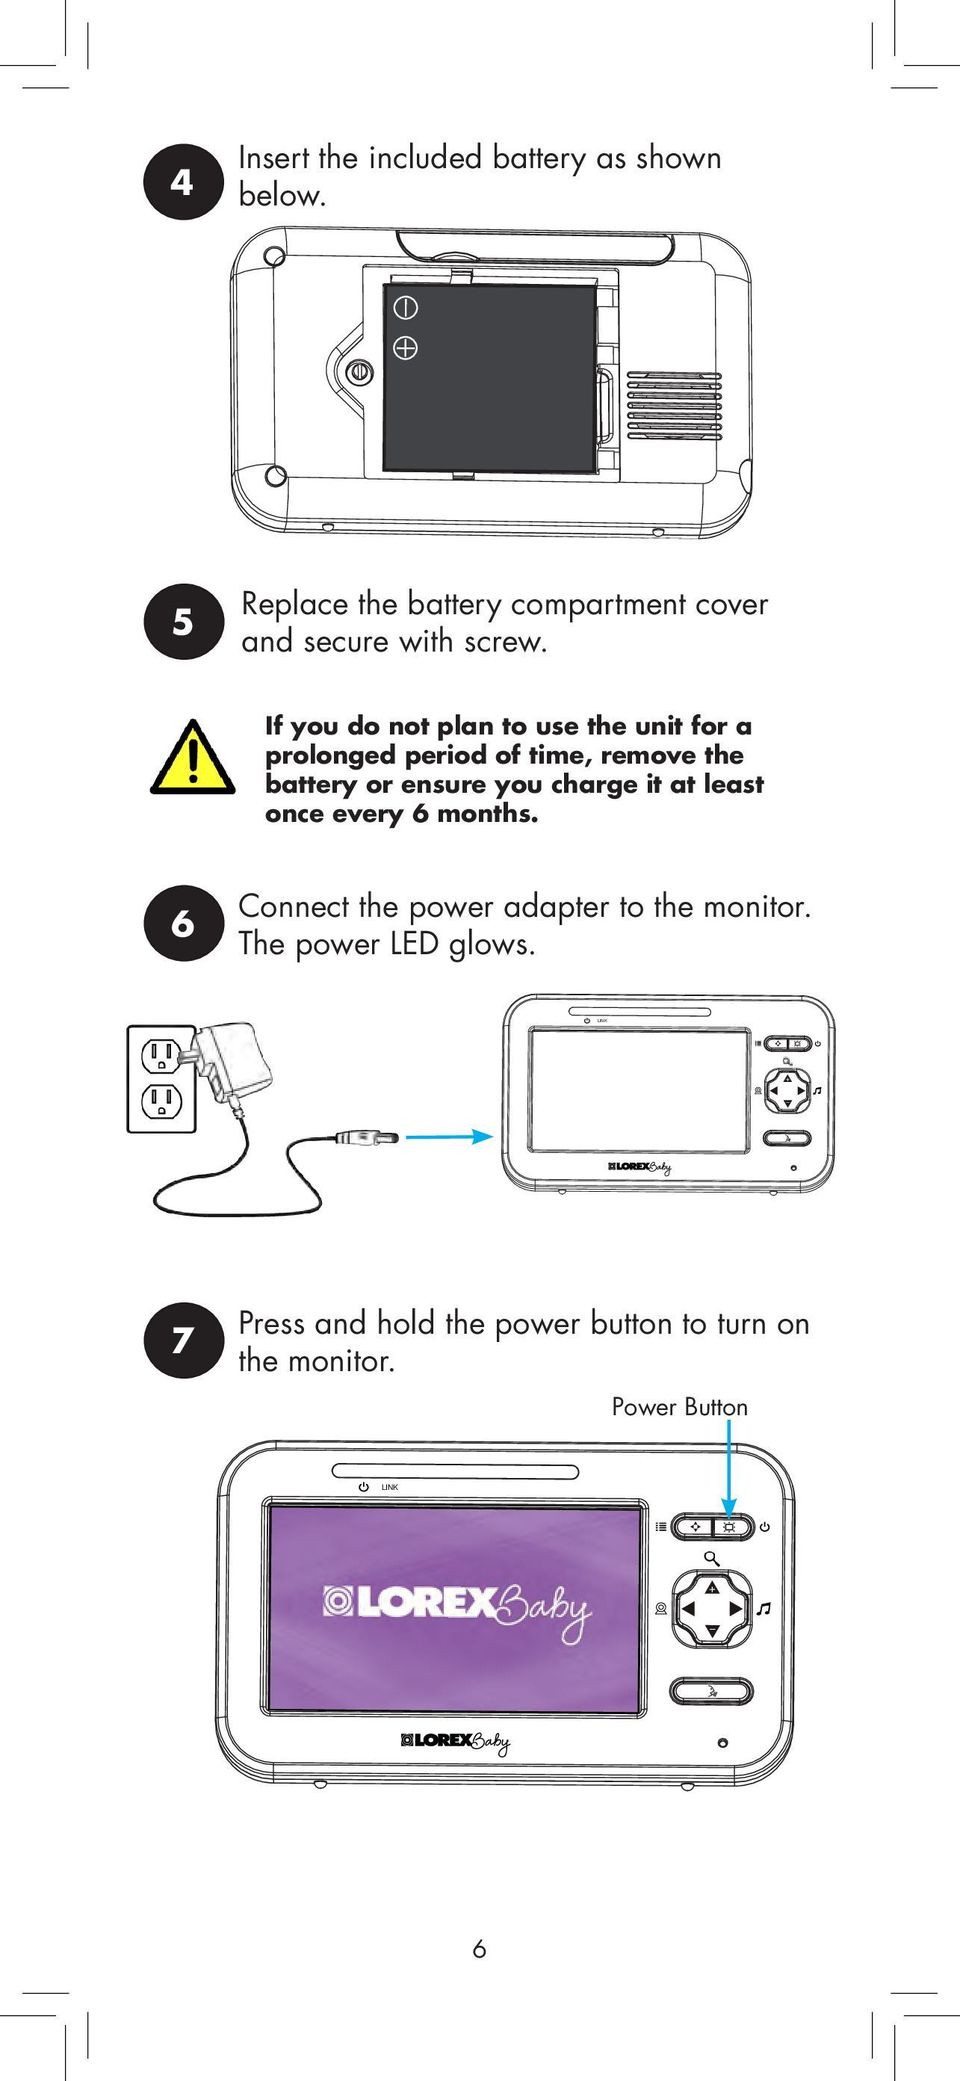 If you do not plan to use the unit for a prolonged period of time, remove the battery or ensure